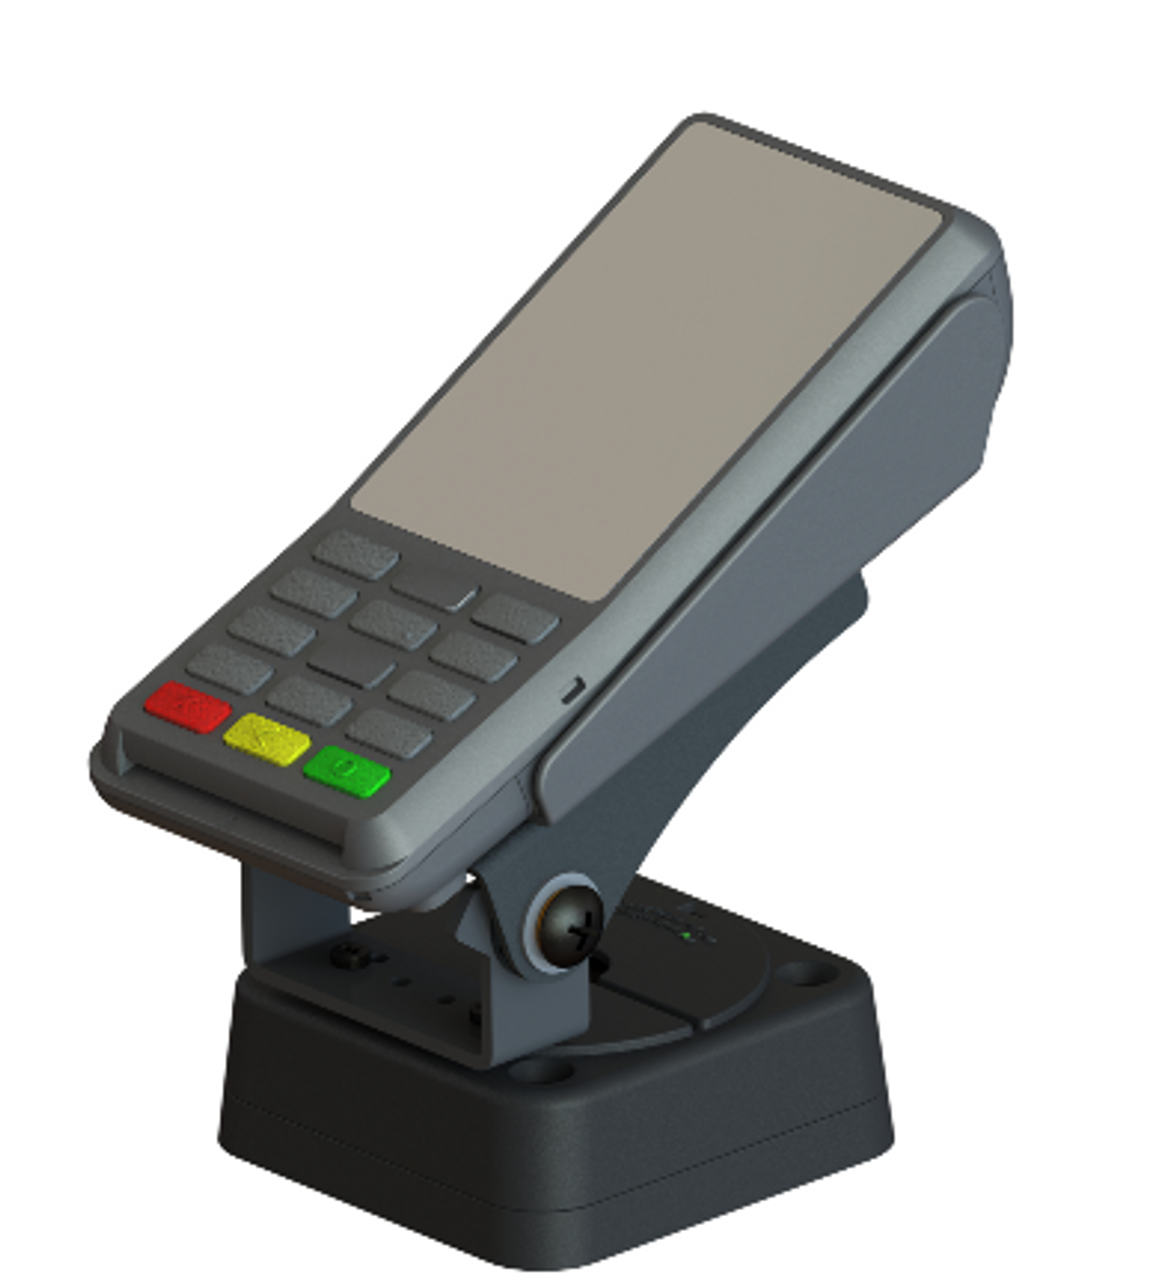 Verifone P400 Low Profile Credit Card Stand by Swivel Stands